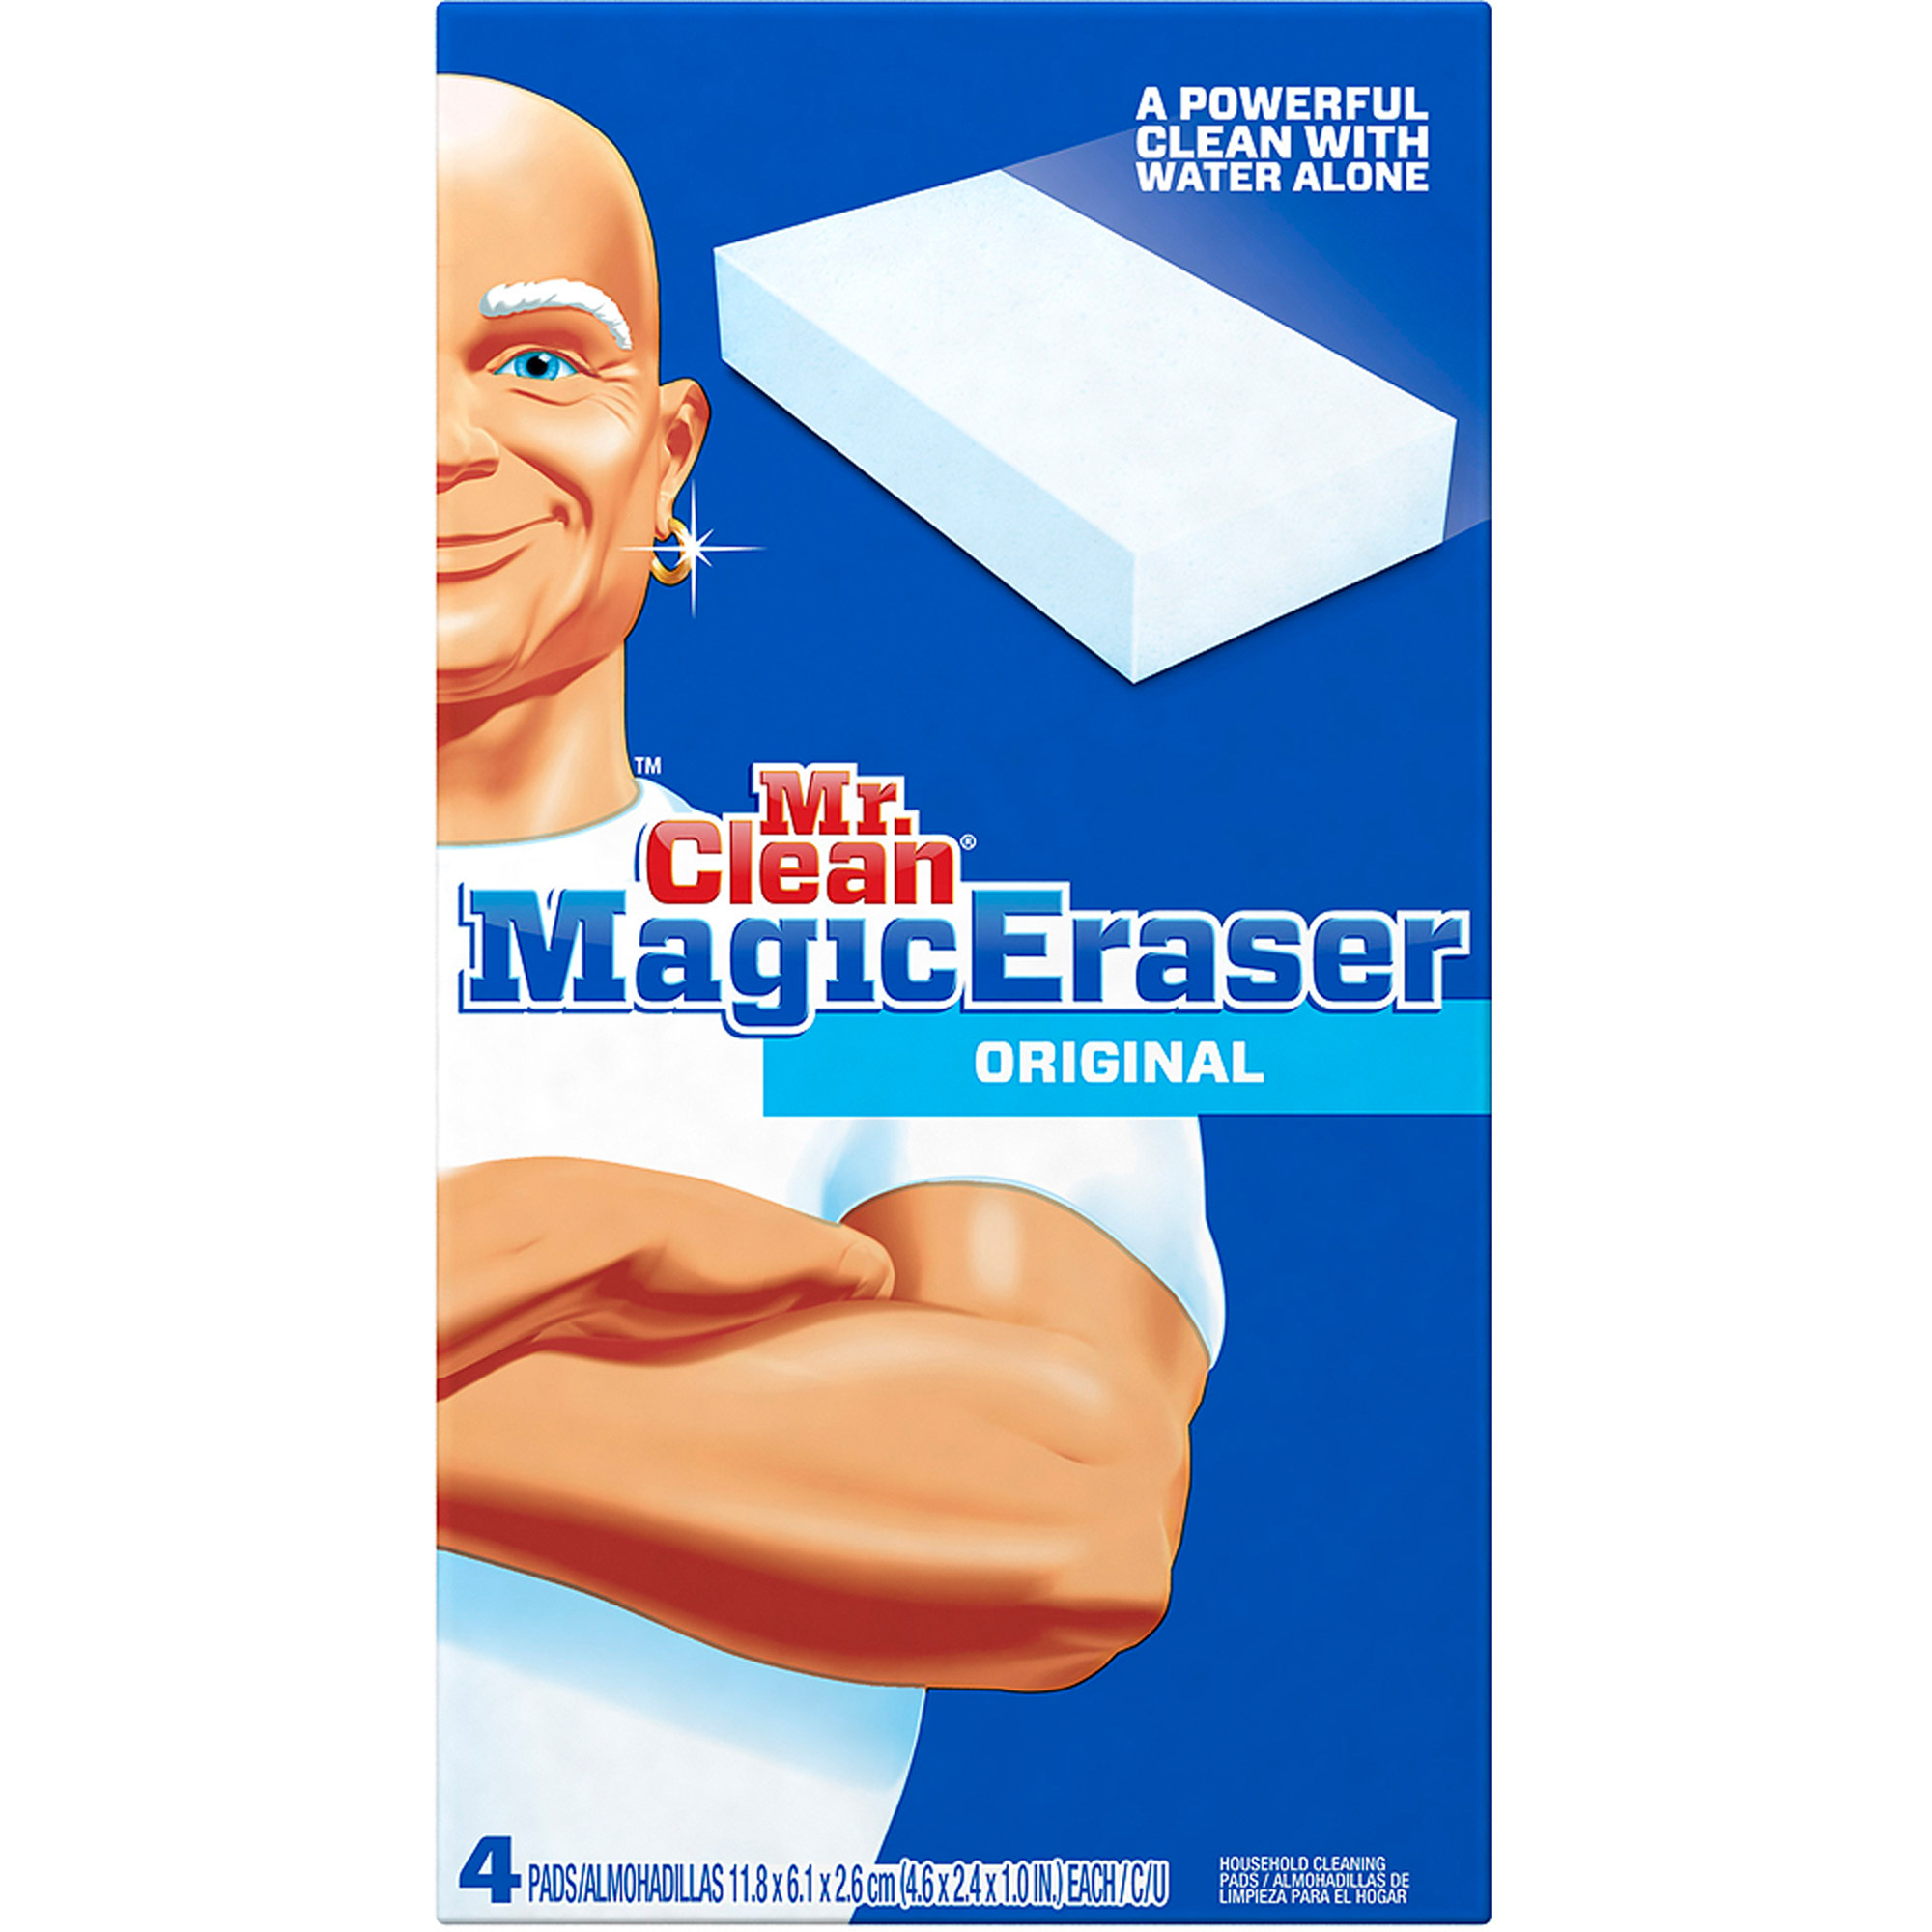 Mr Clean Magic Eraser Original, 4 count